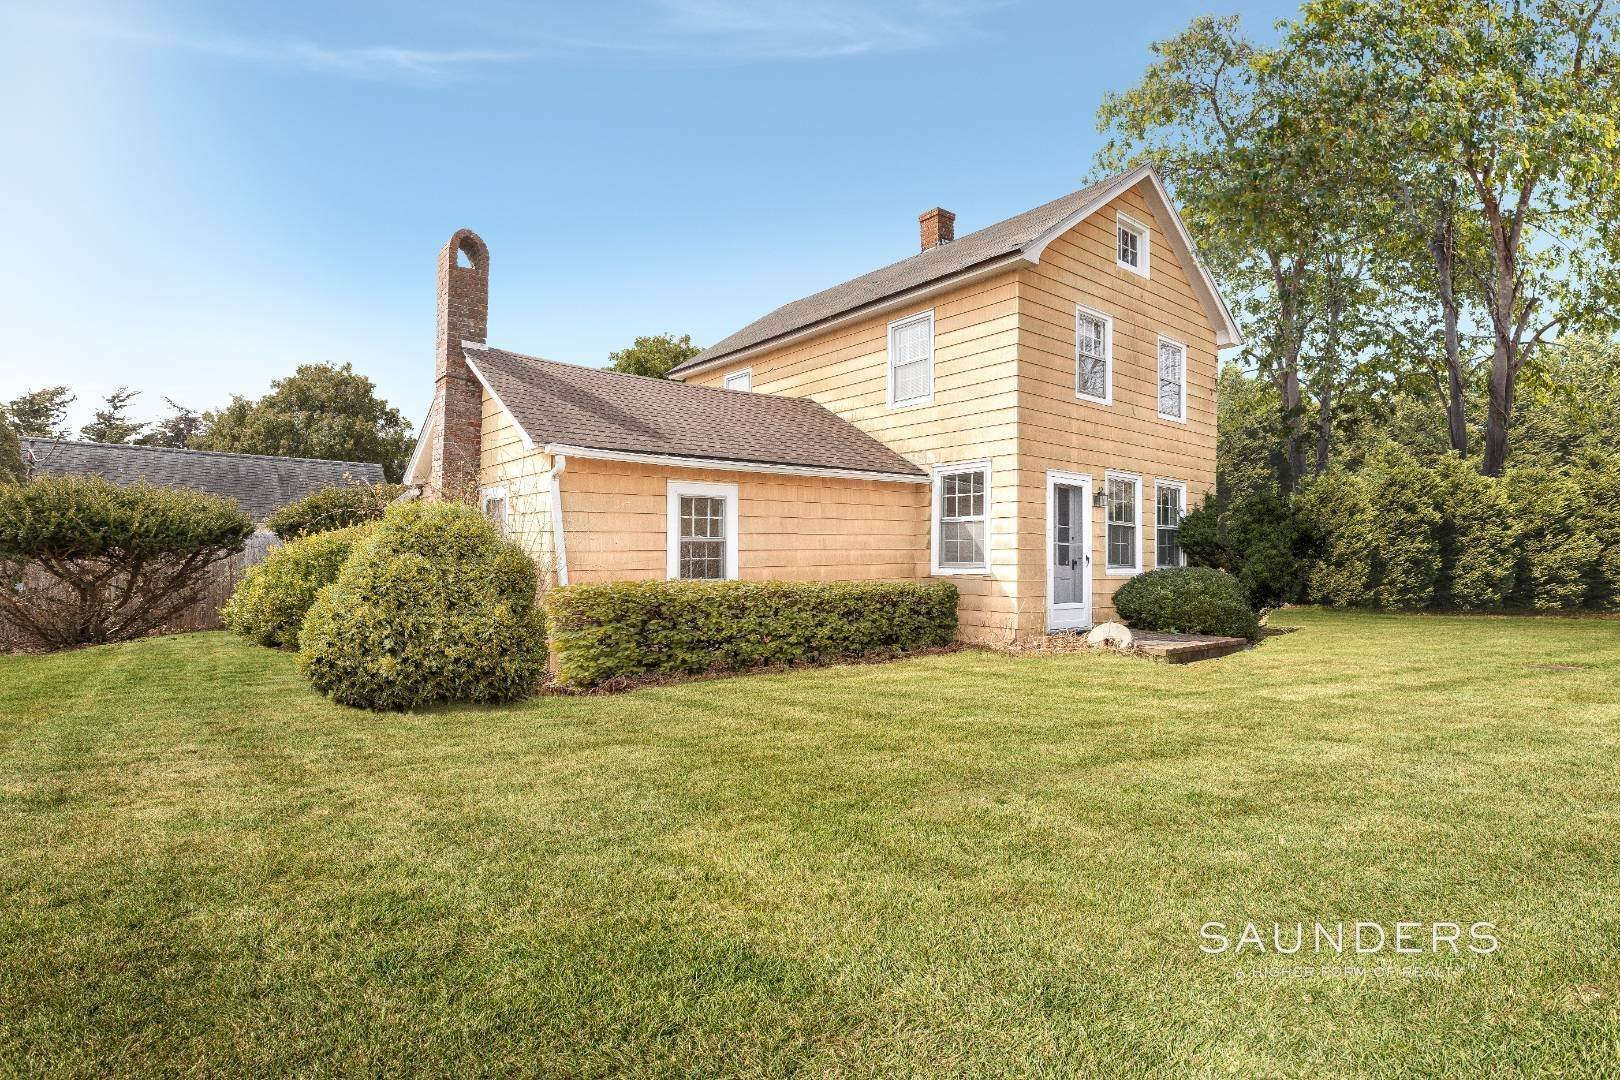 Single Family Homes for Sale at East Hampton Village Fringe Compound 21 Miller Terrace, East Hampton, East Hampton Town, NY 11937